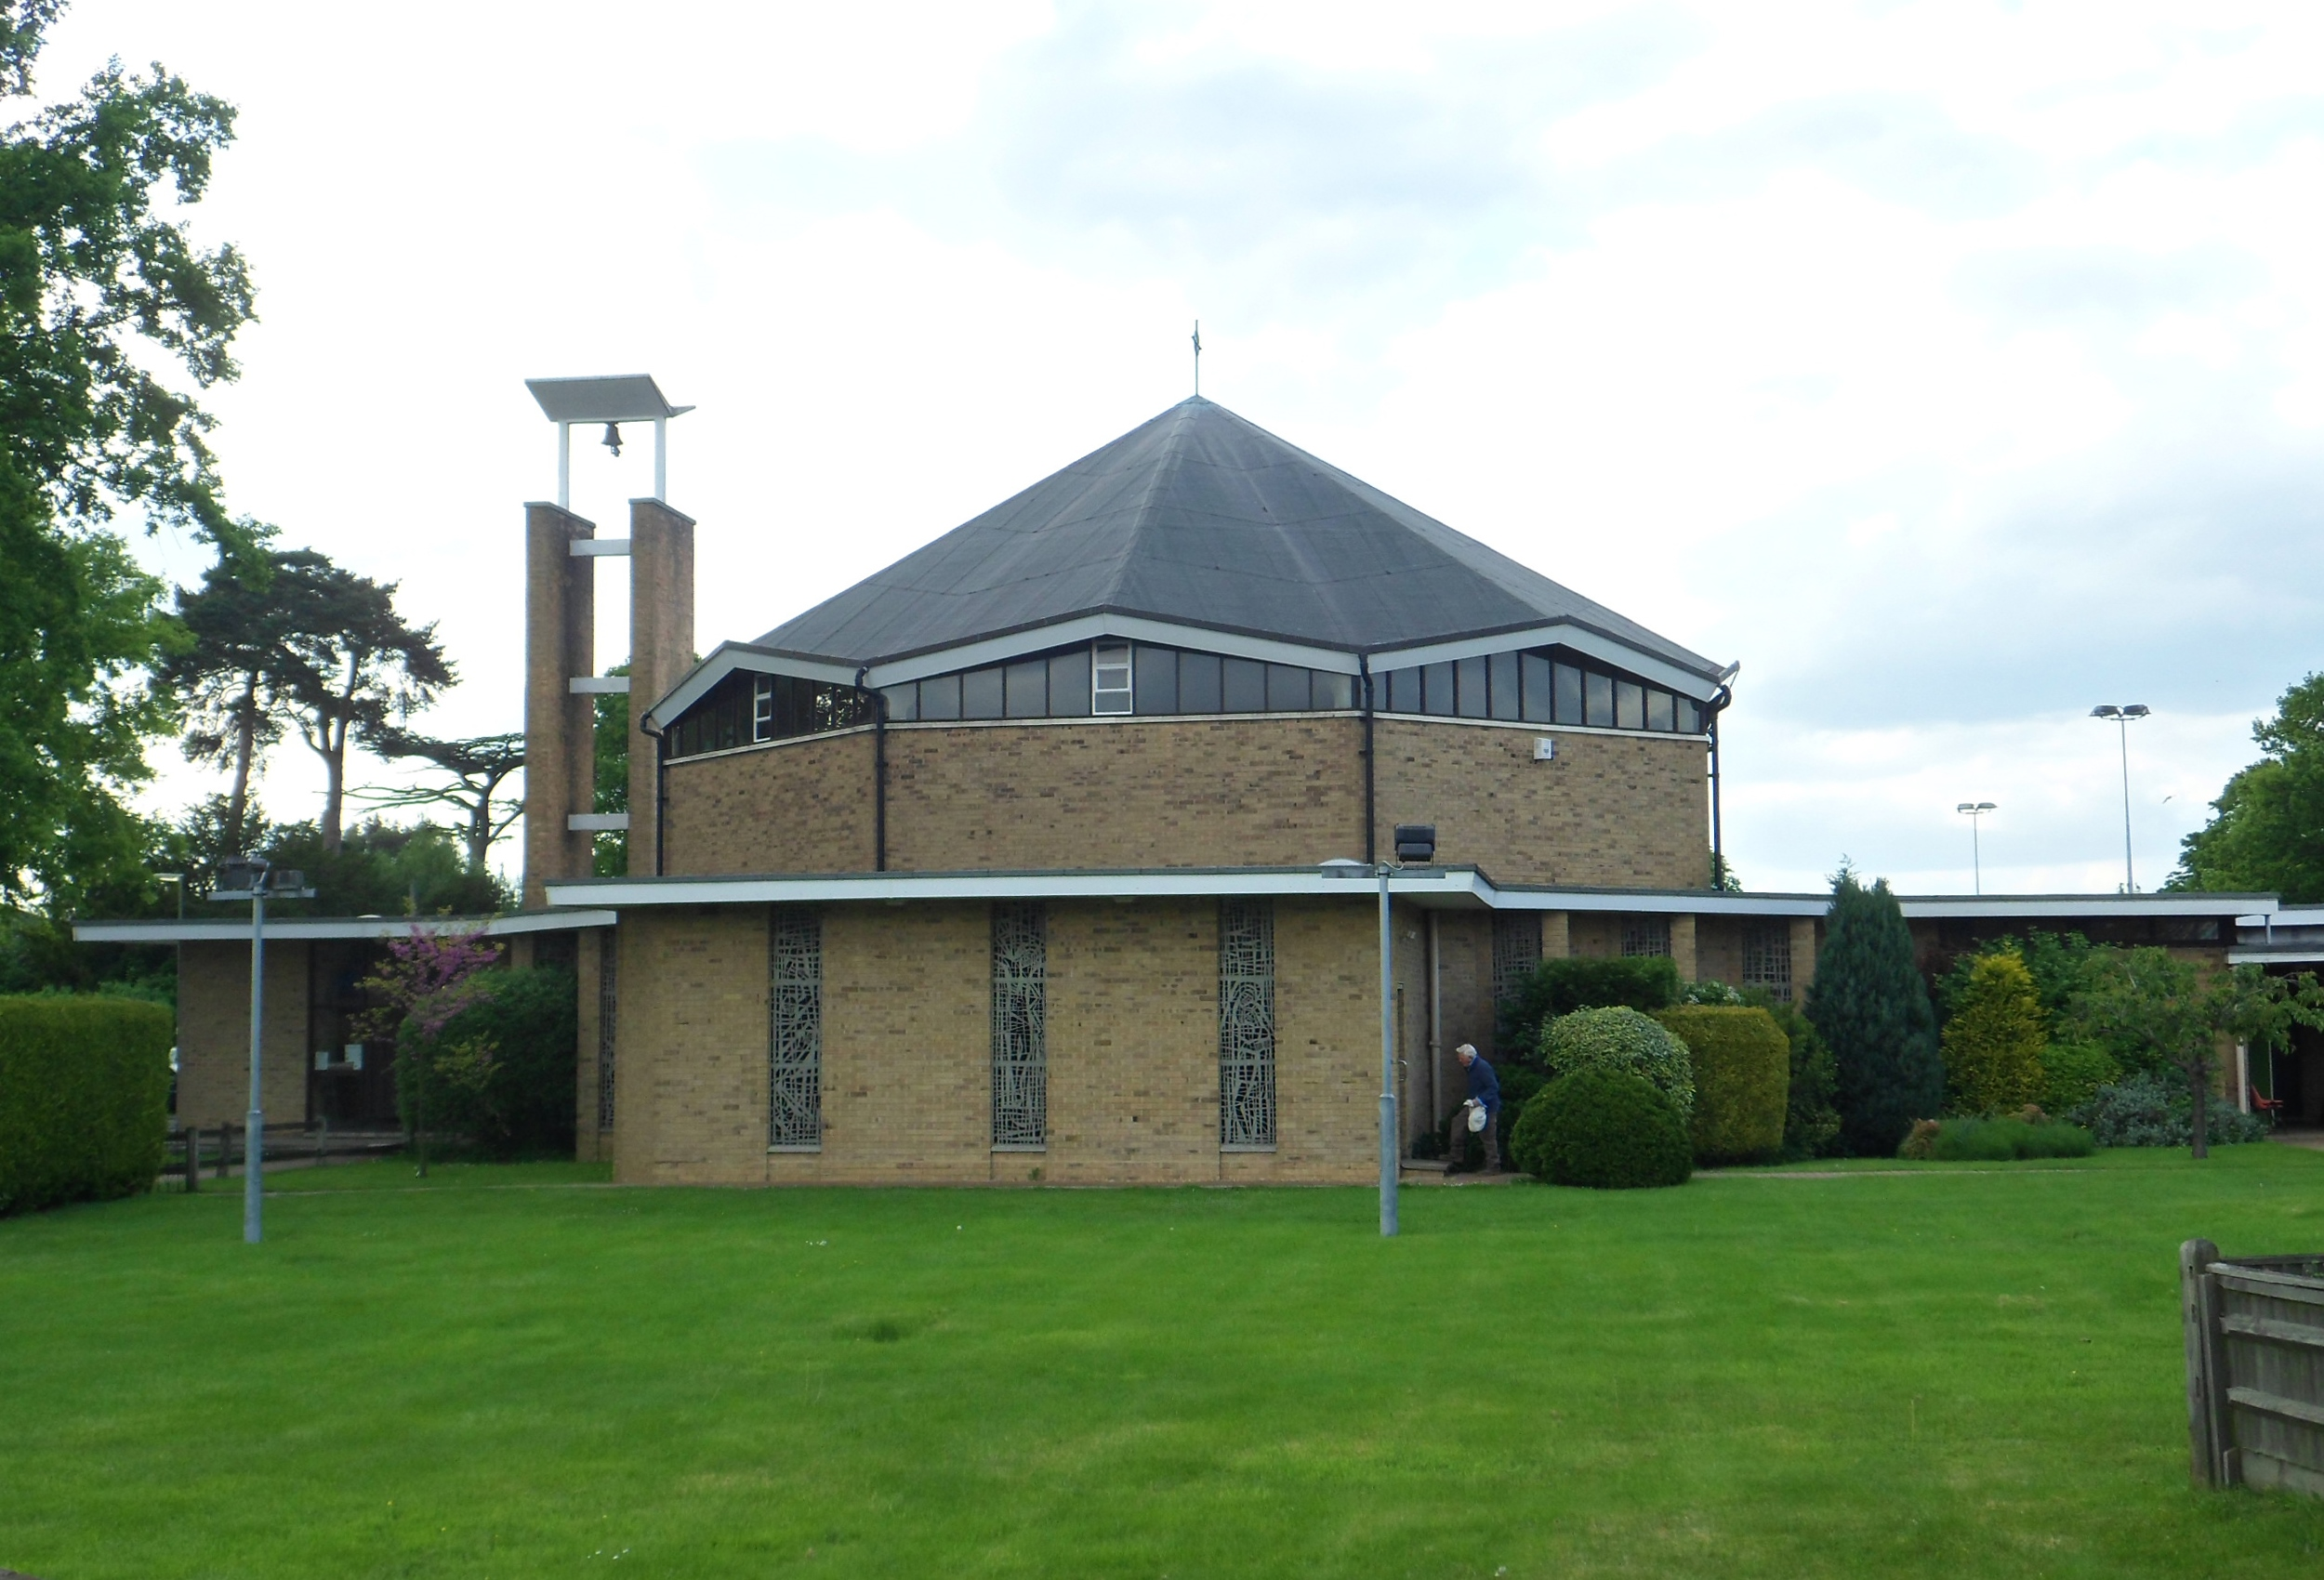 FileChurch Of The English Martyrs Vicarage Lane Horley June 2013